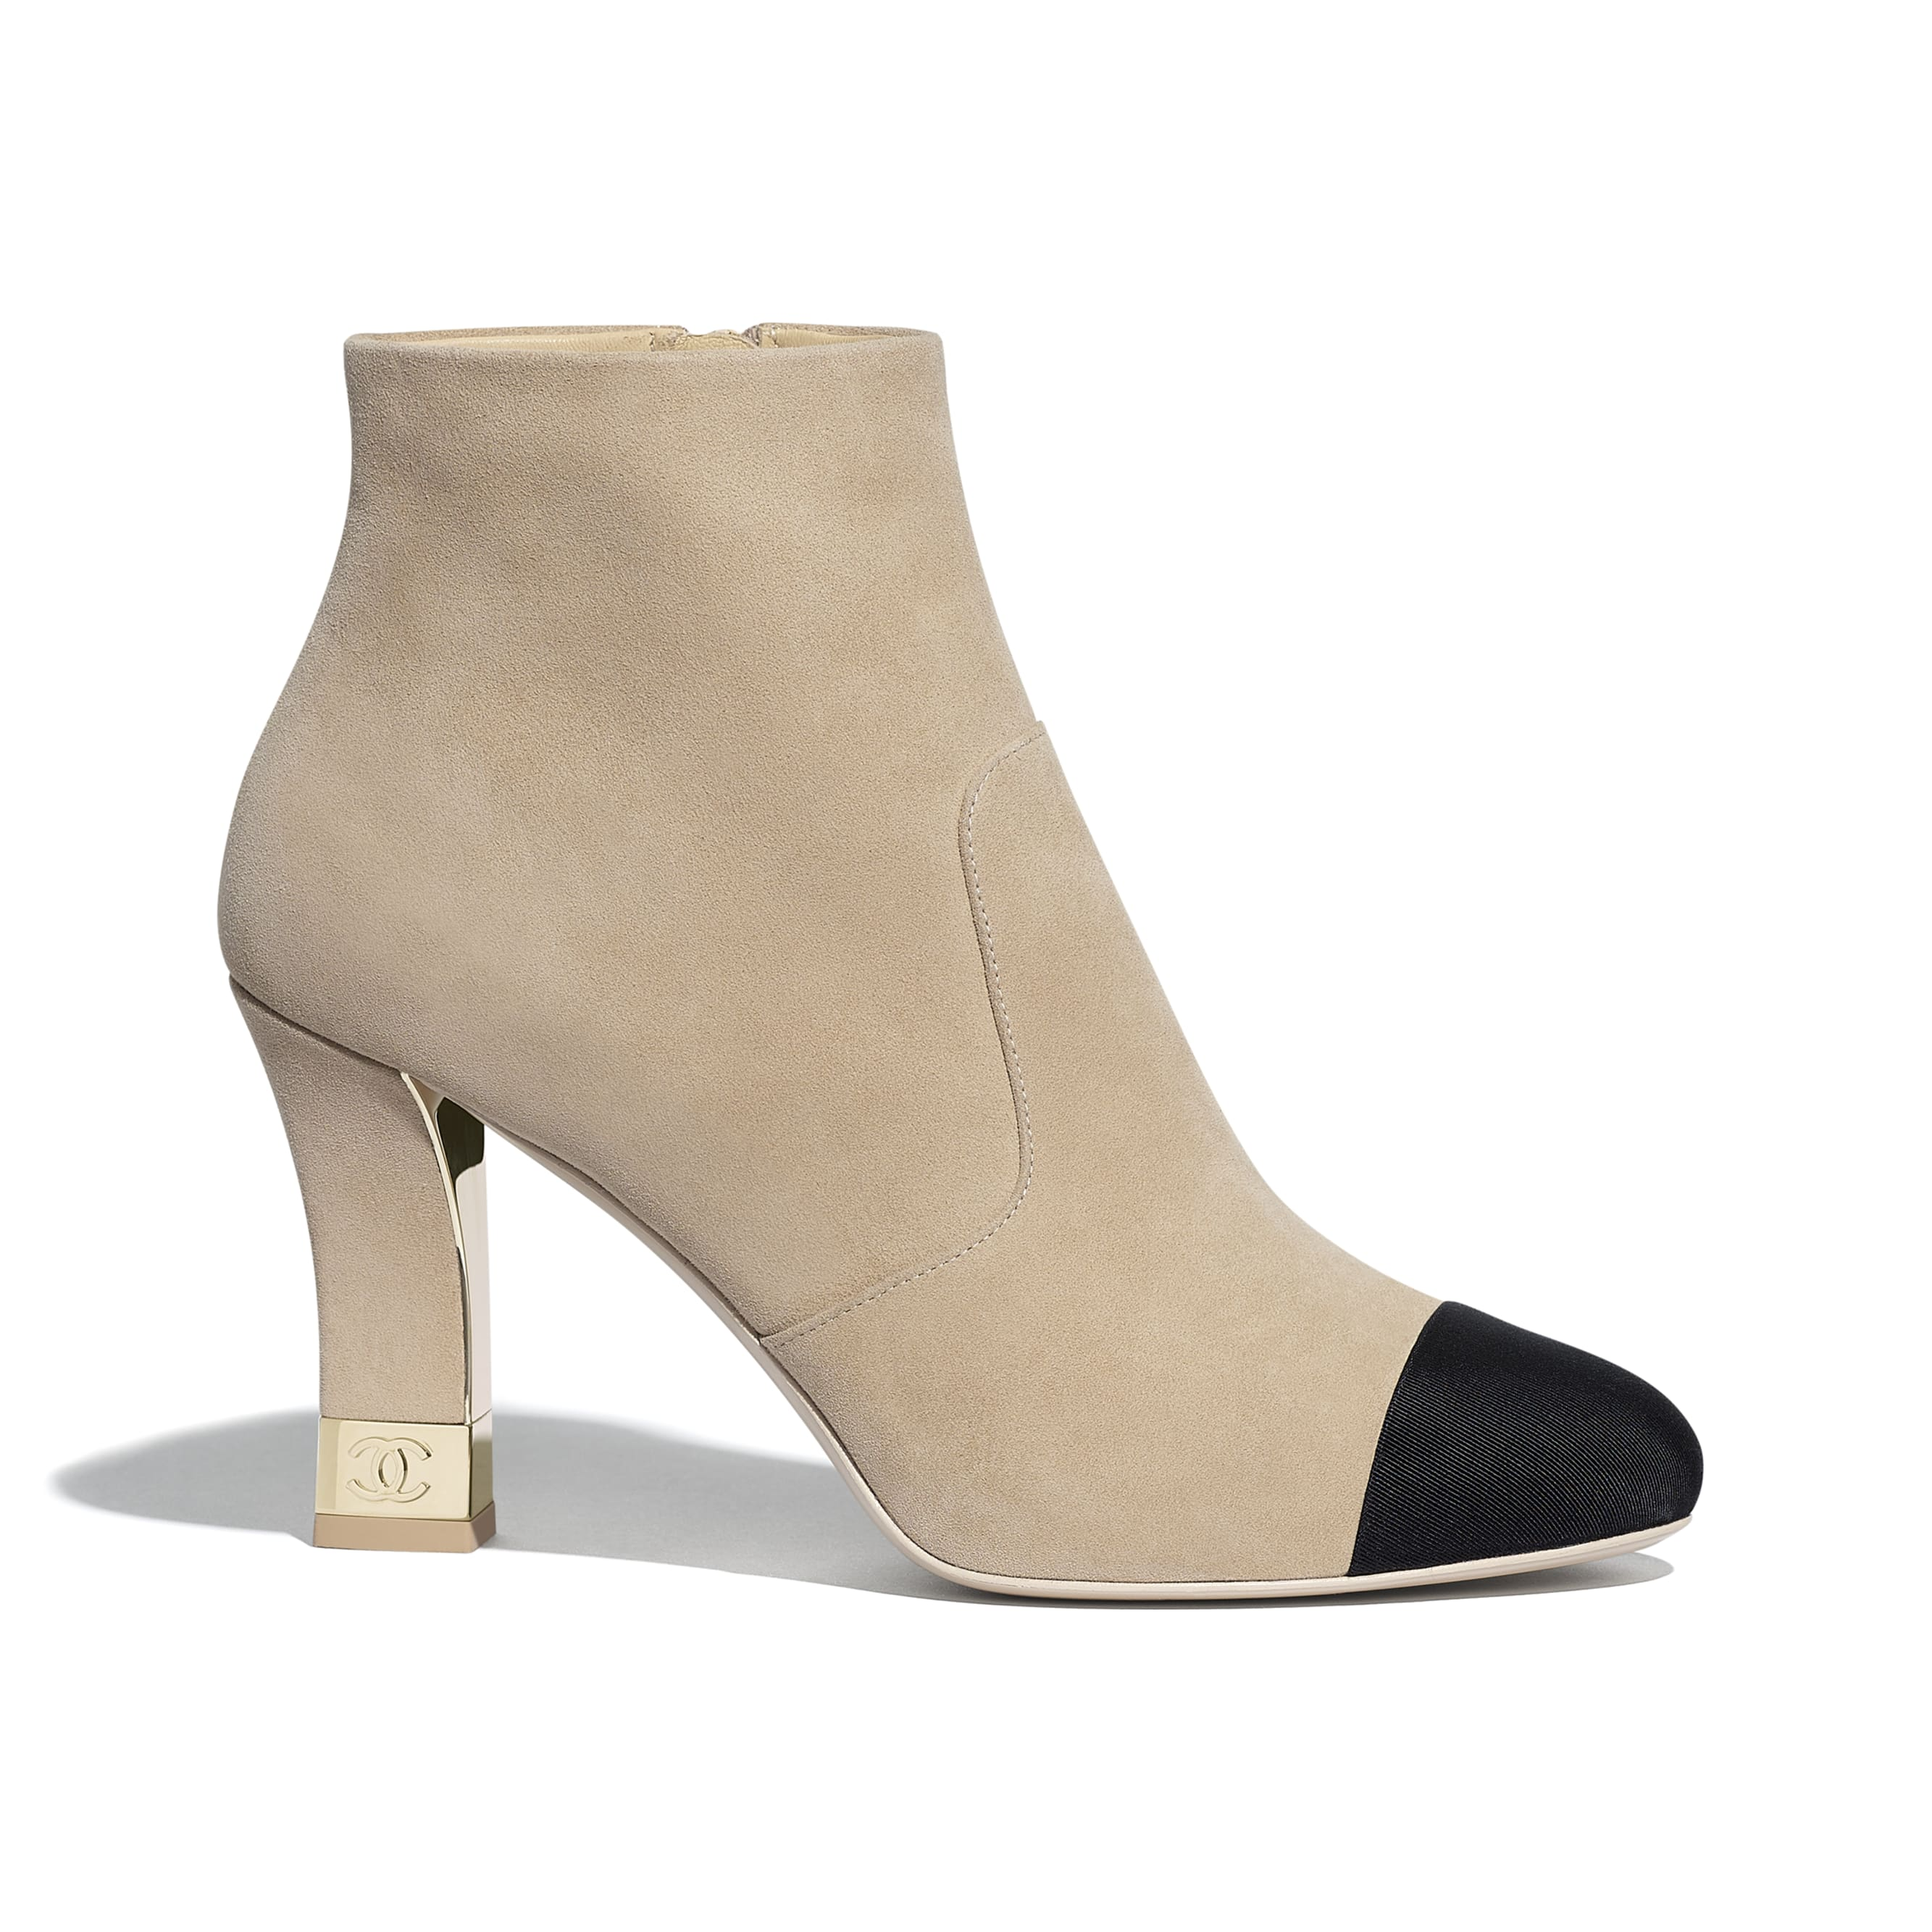 Ankle Boots - Beige & Black - Suede Kidskin & Grosgrain - CHANEL - Default view - see standard sized version